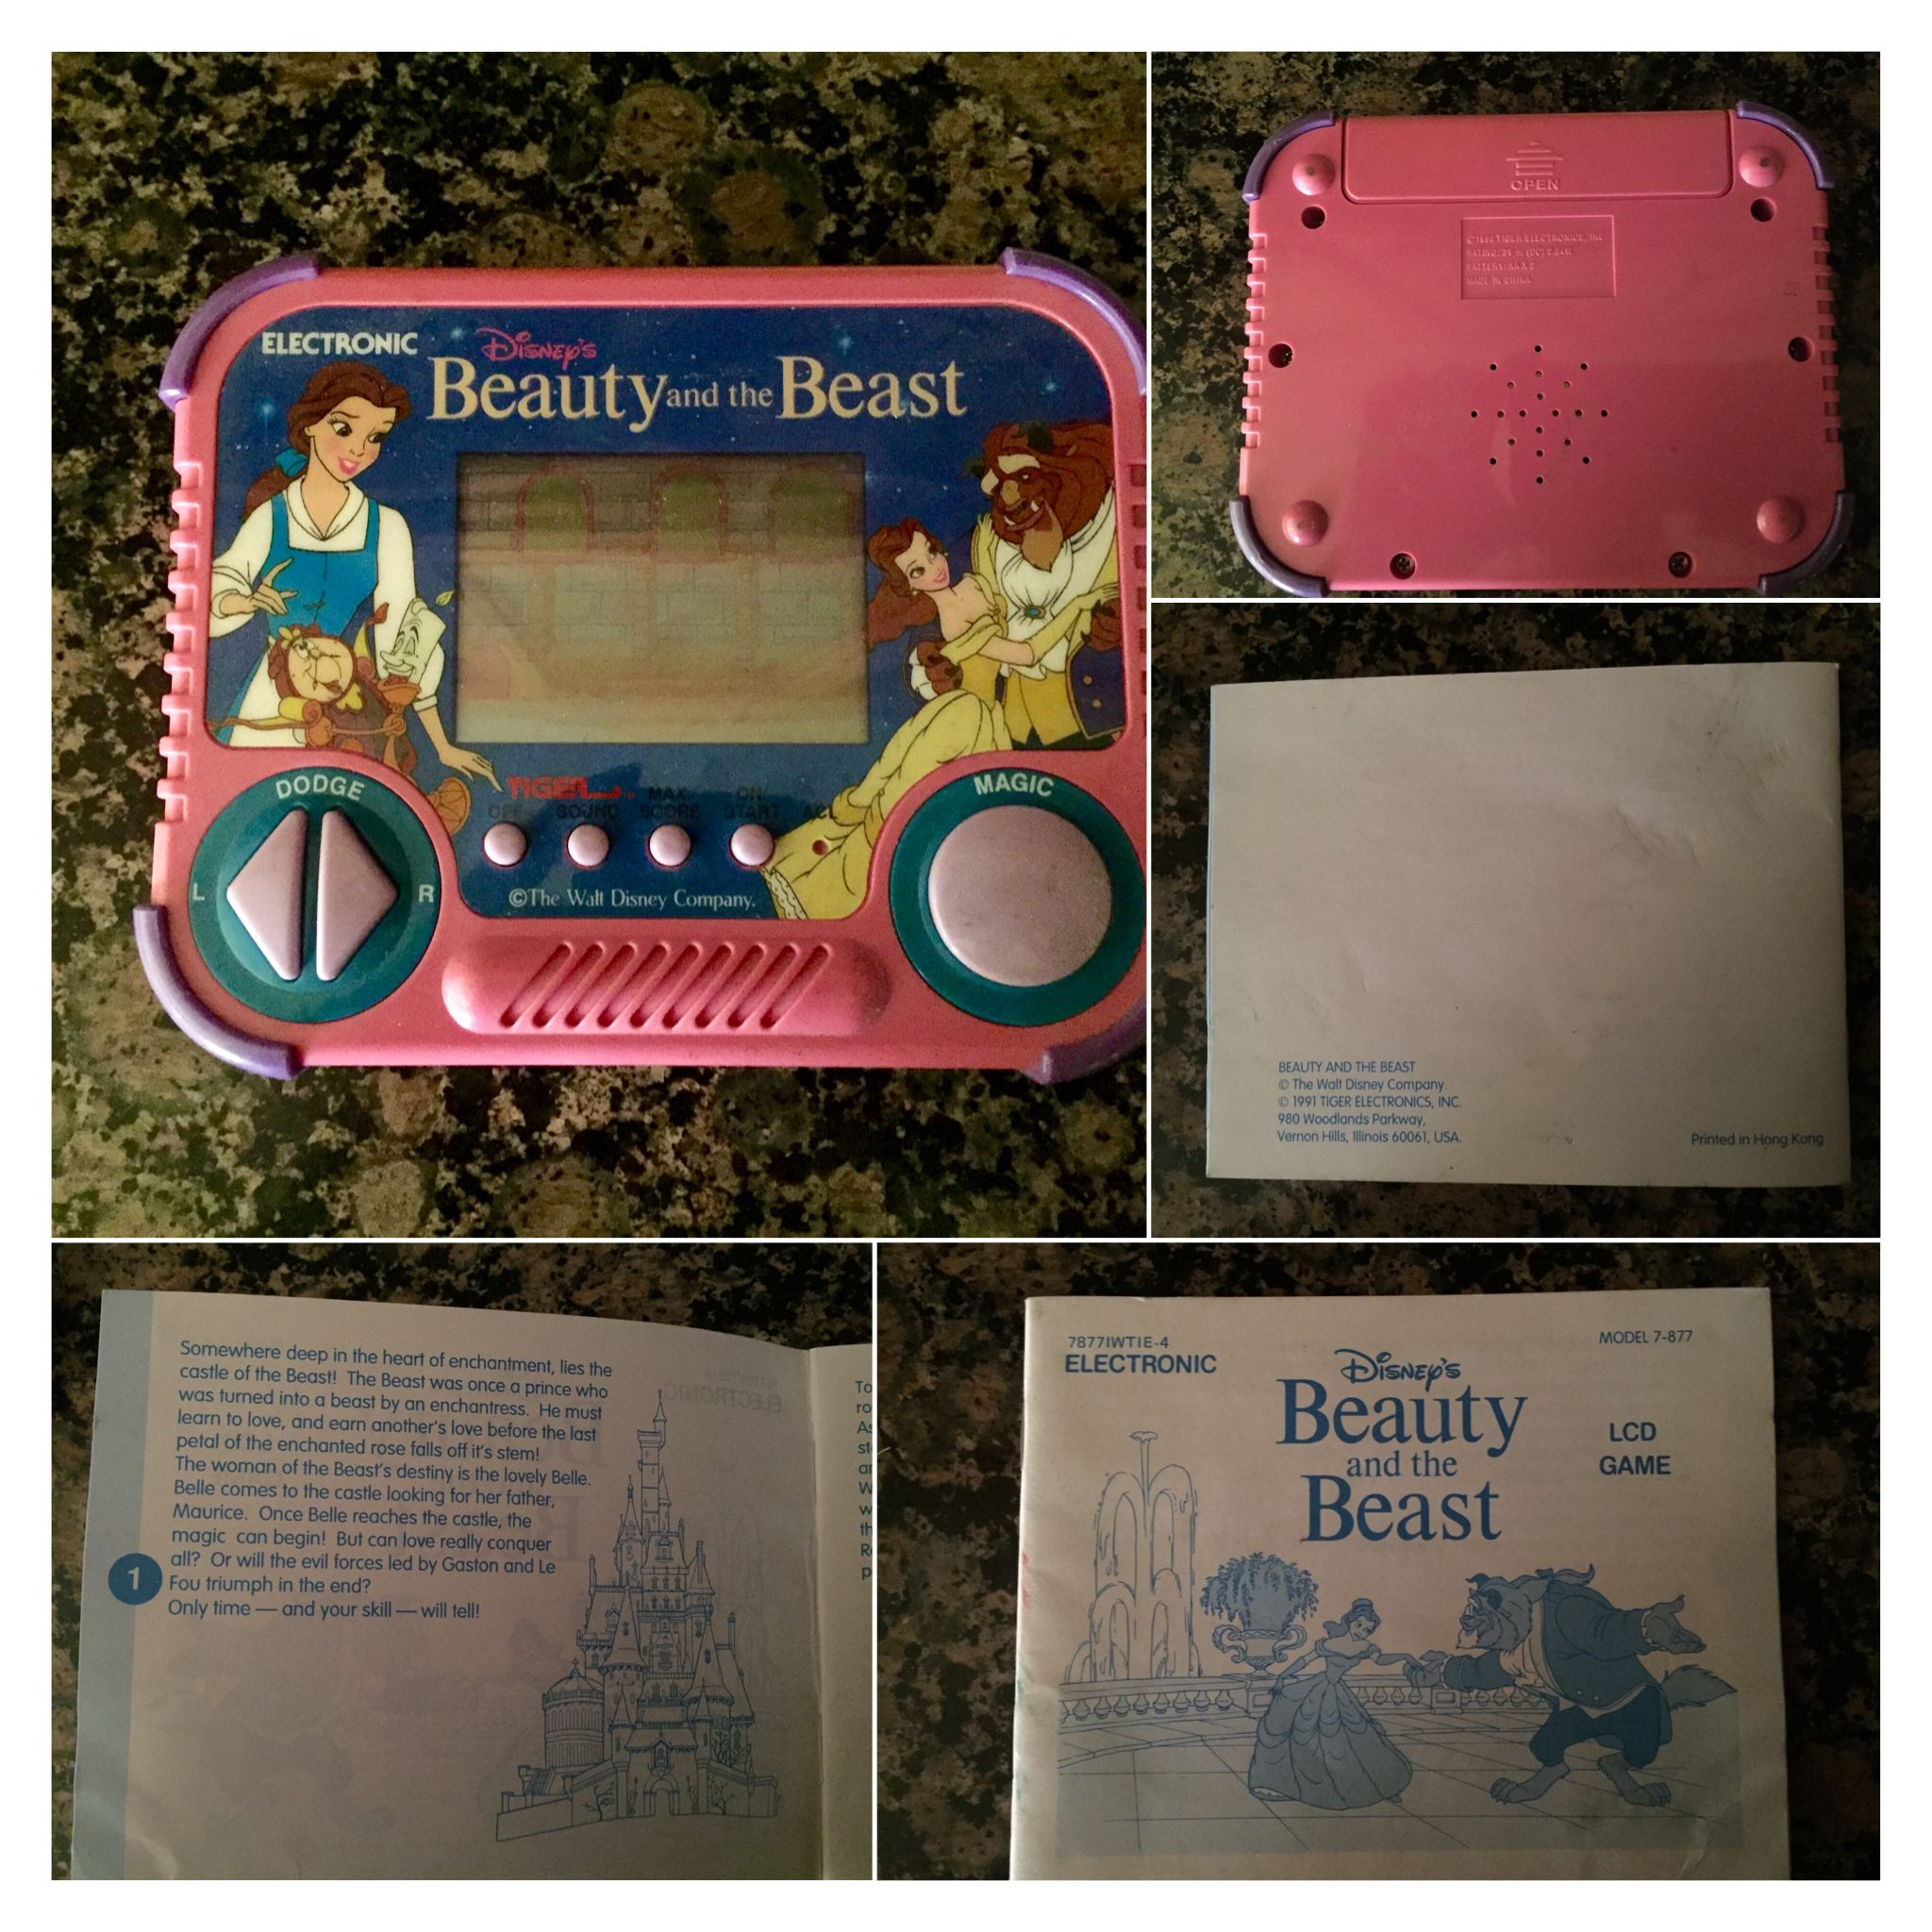 Beauty and the Beast 1991 hand held video game - Disney